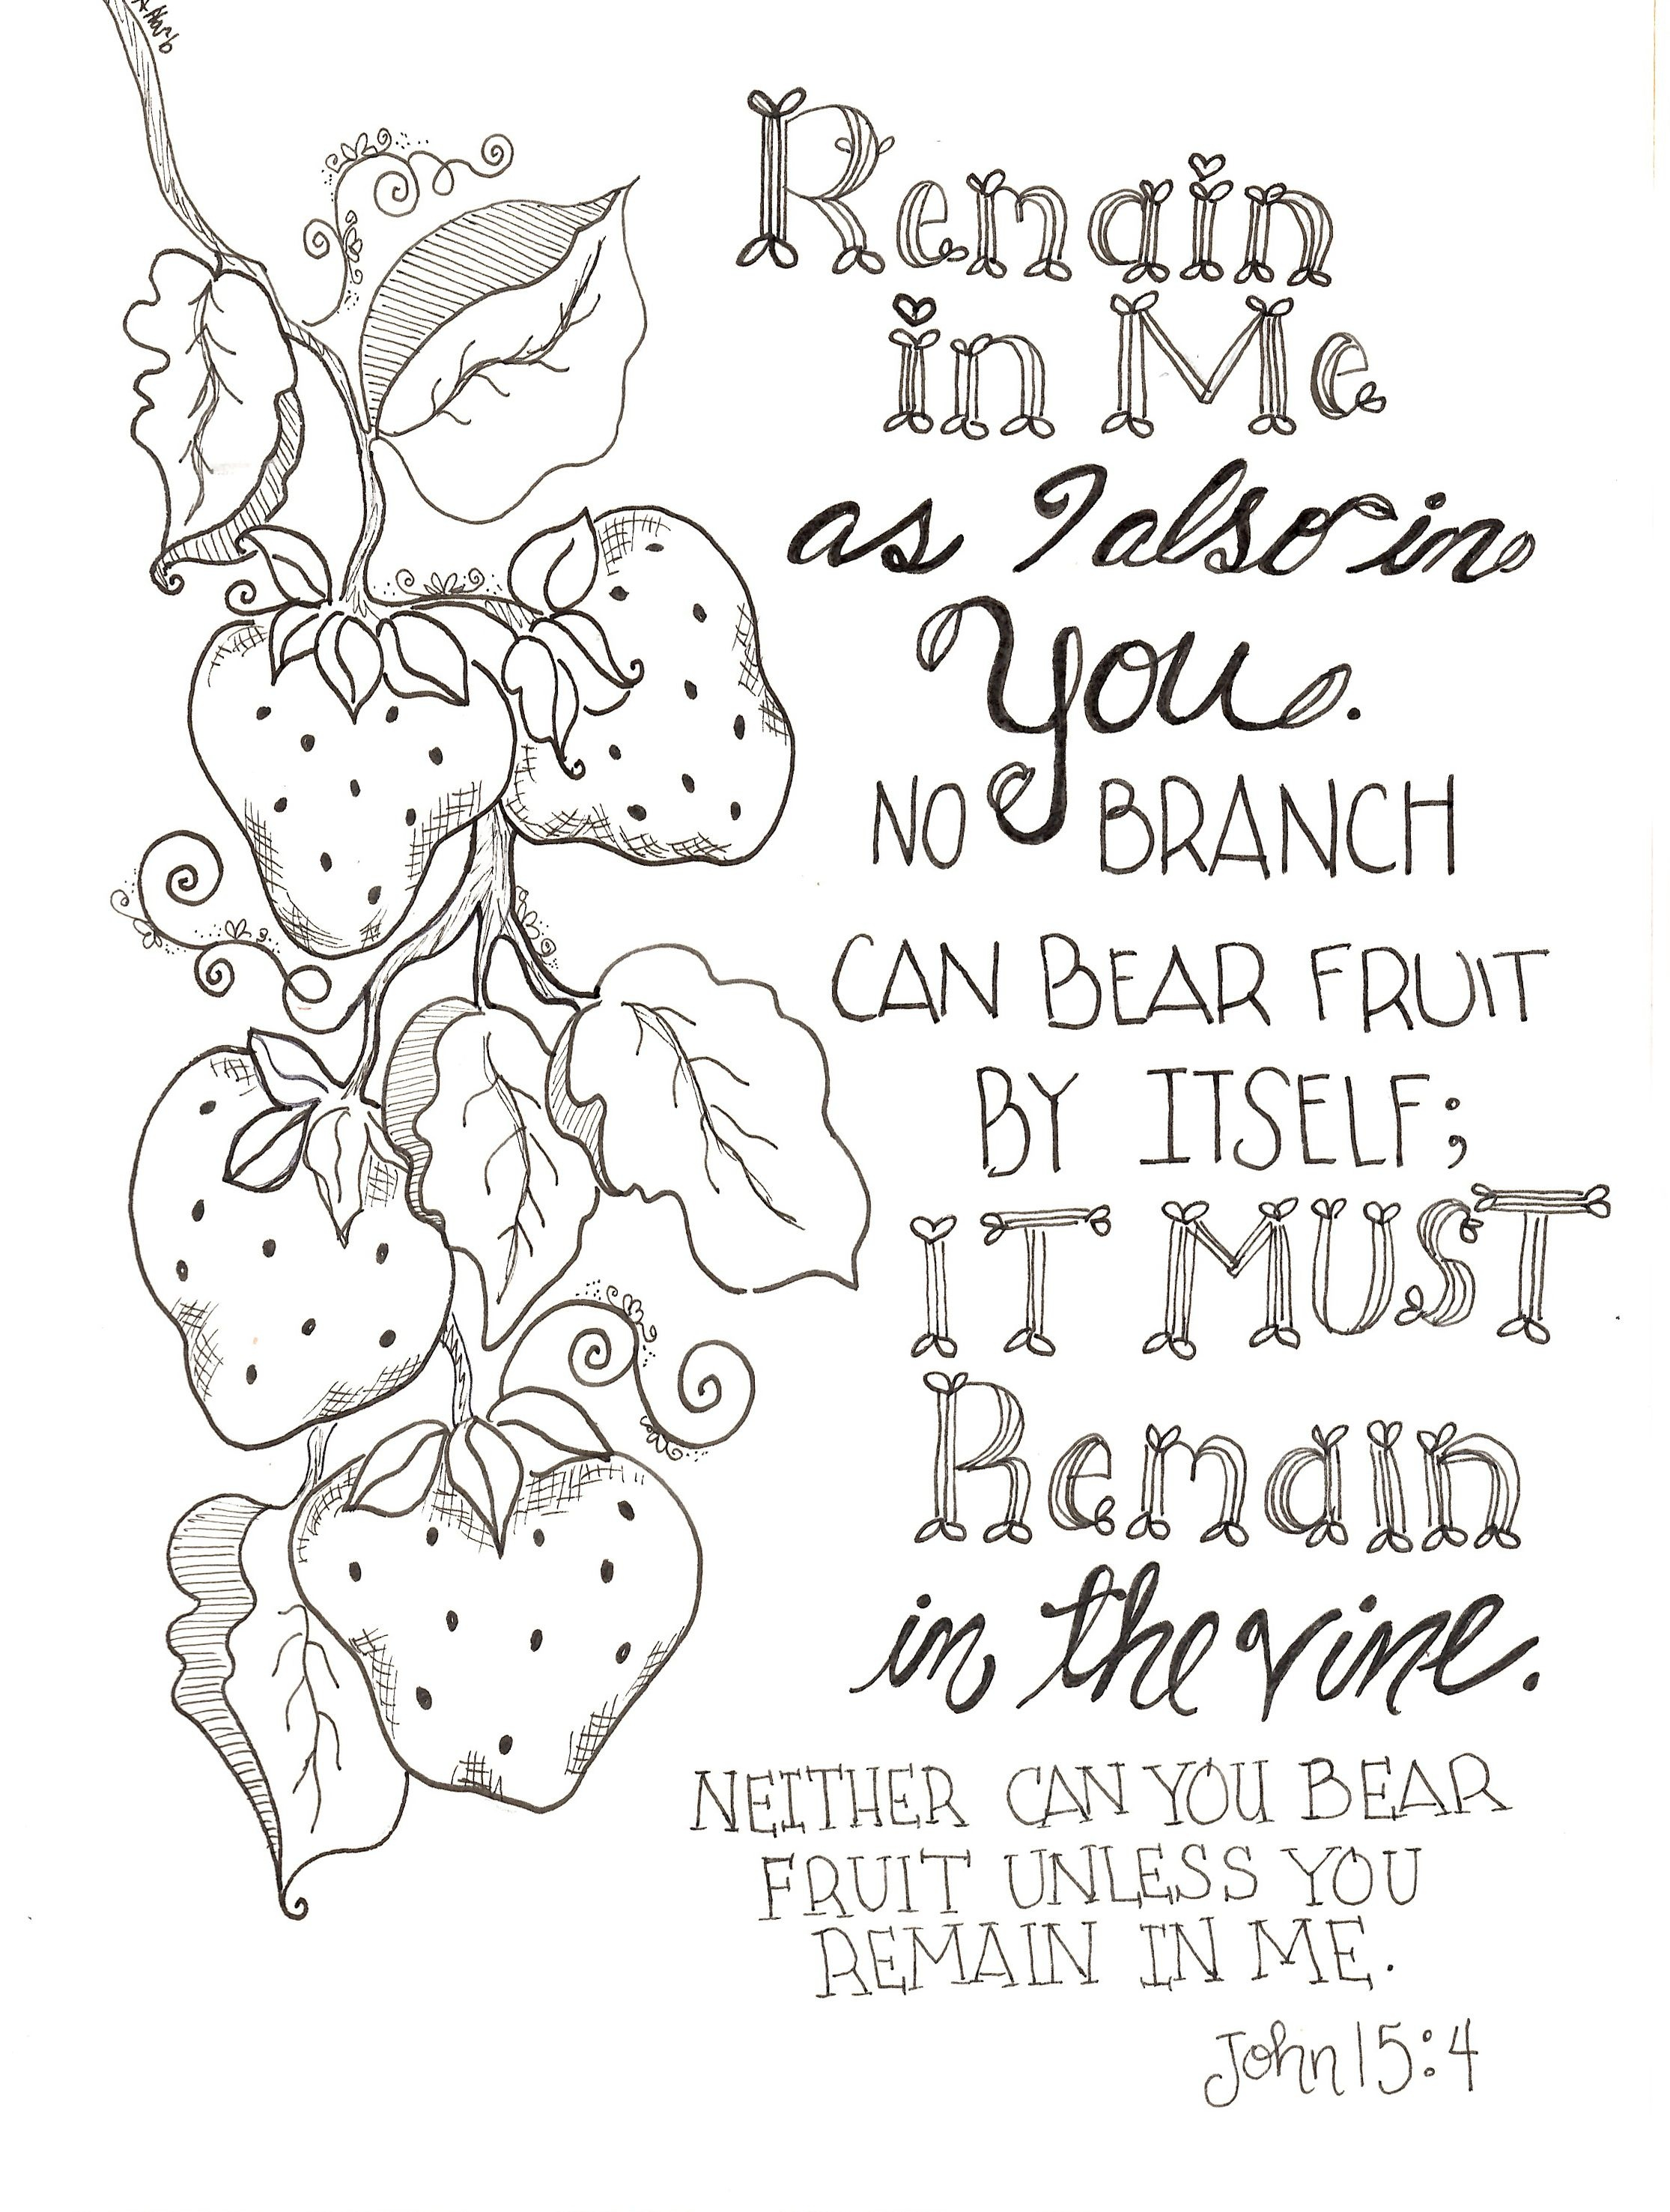 Free Inspirational Remain In Me Scripture Coloring Pages Printable - Free Printable Bible Coloring Pages With Scriptures